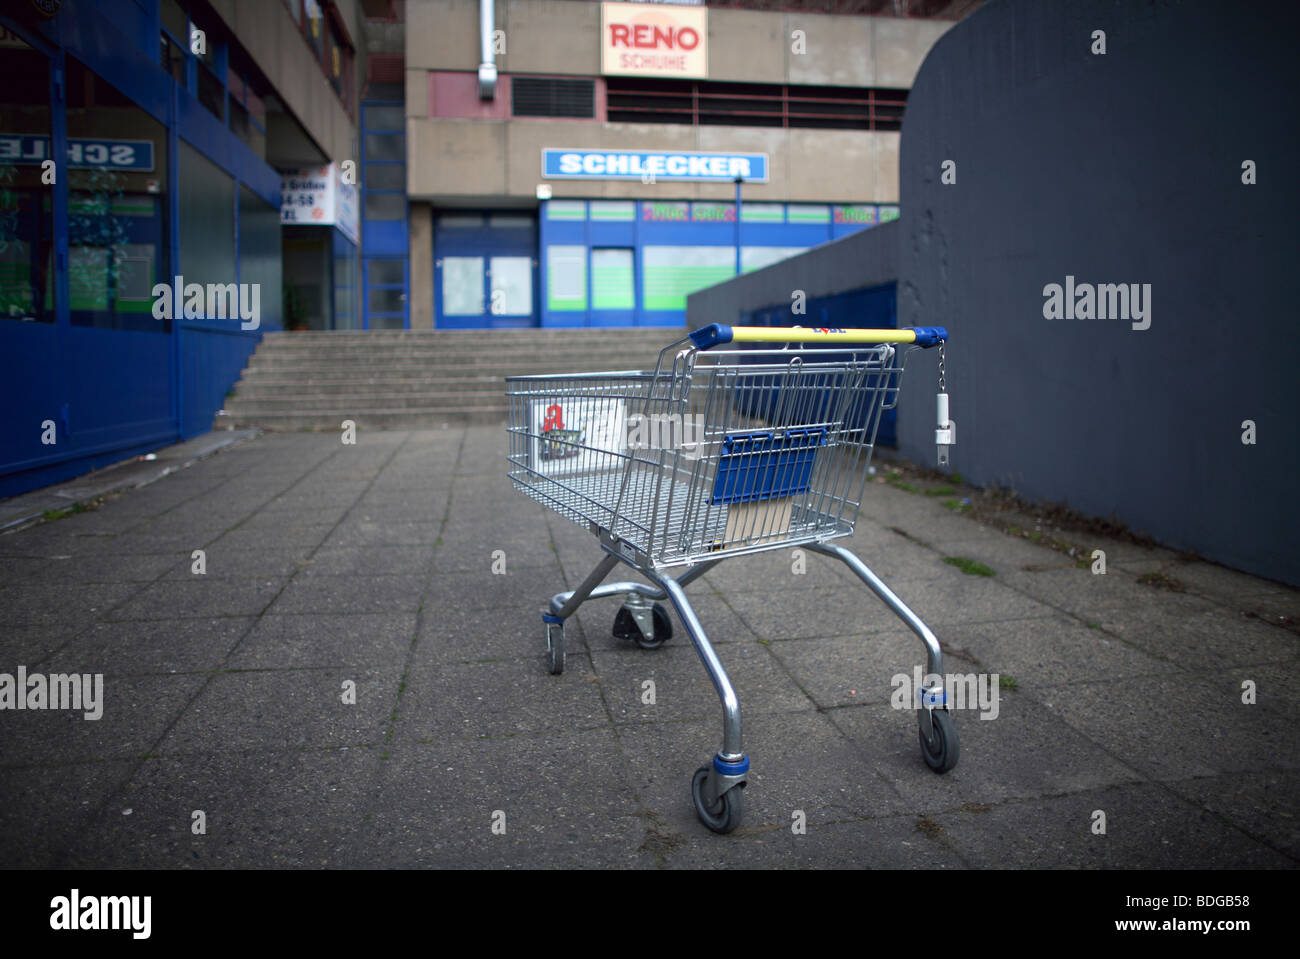 Left shopping trolley, Berlin, Germany - Stock Image